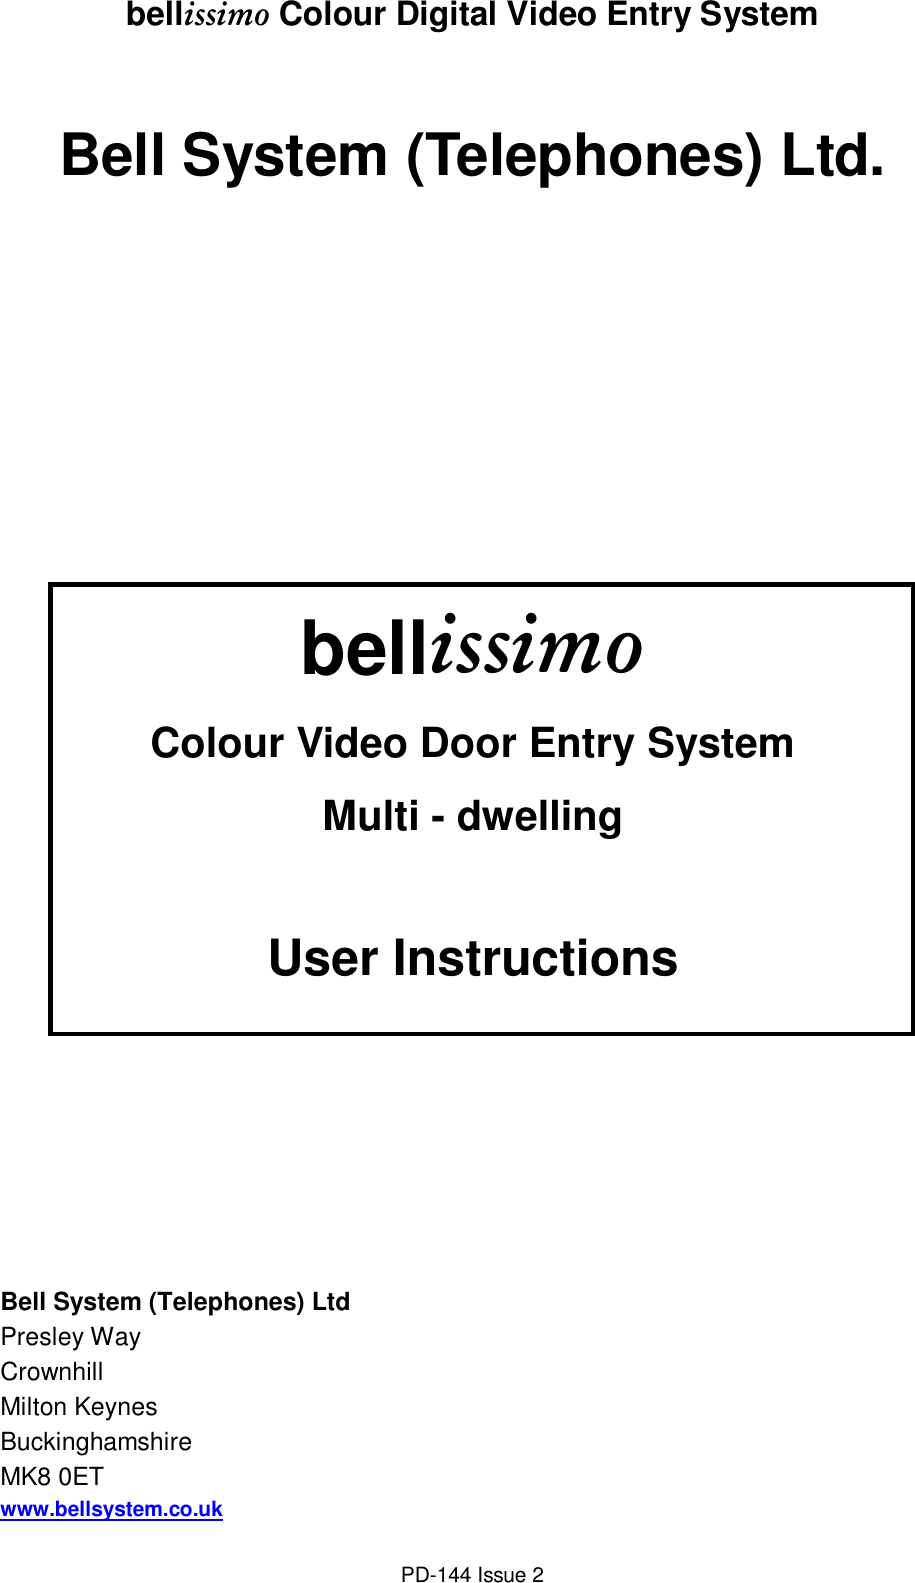 Intercom Wiring Guide Solutions Telex Diagram Bell System Bellissimo Users Manual User Multi Way